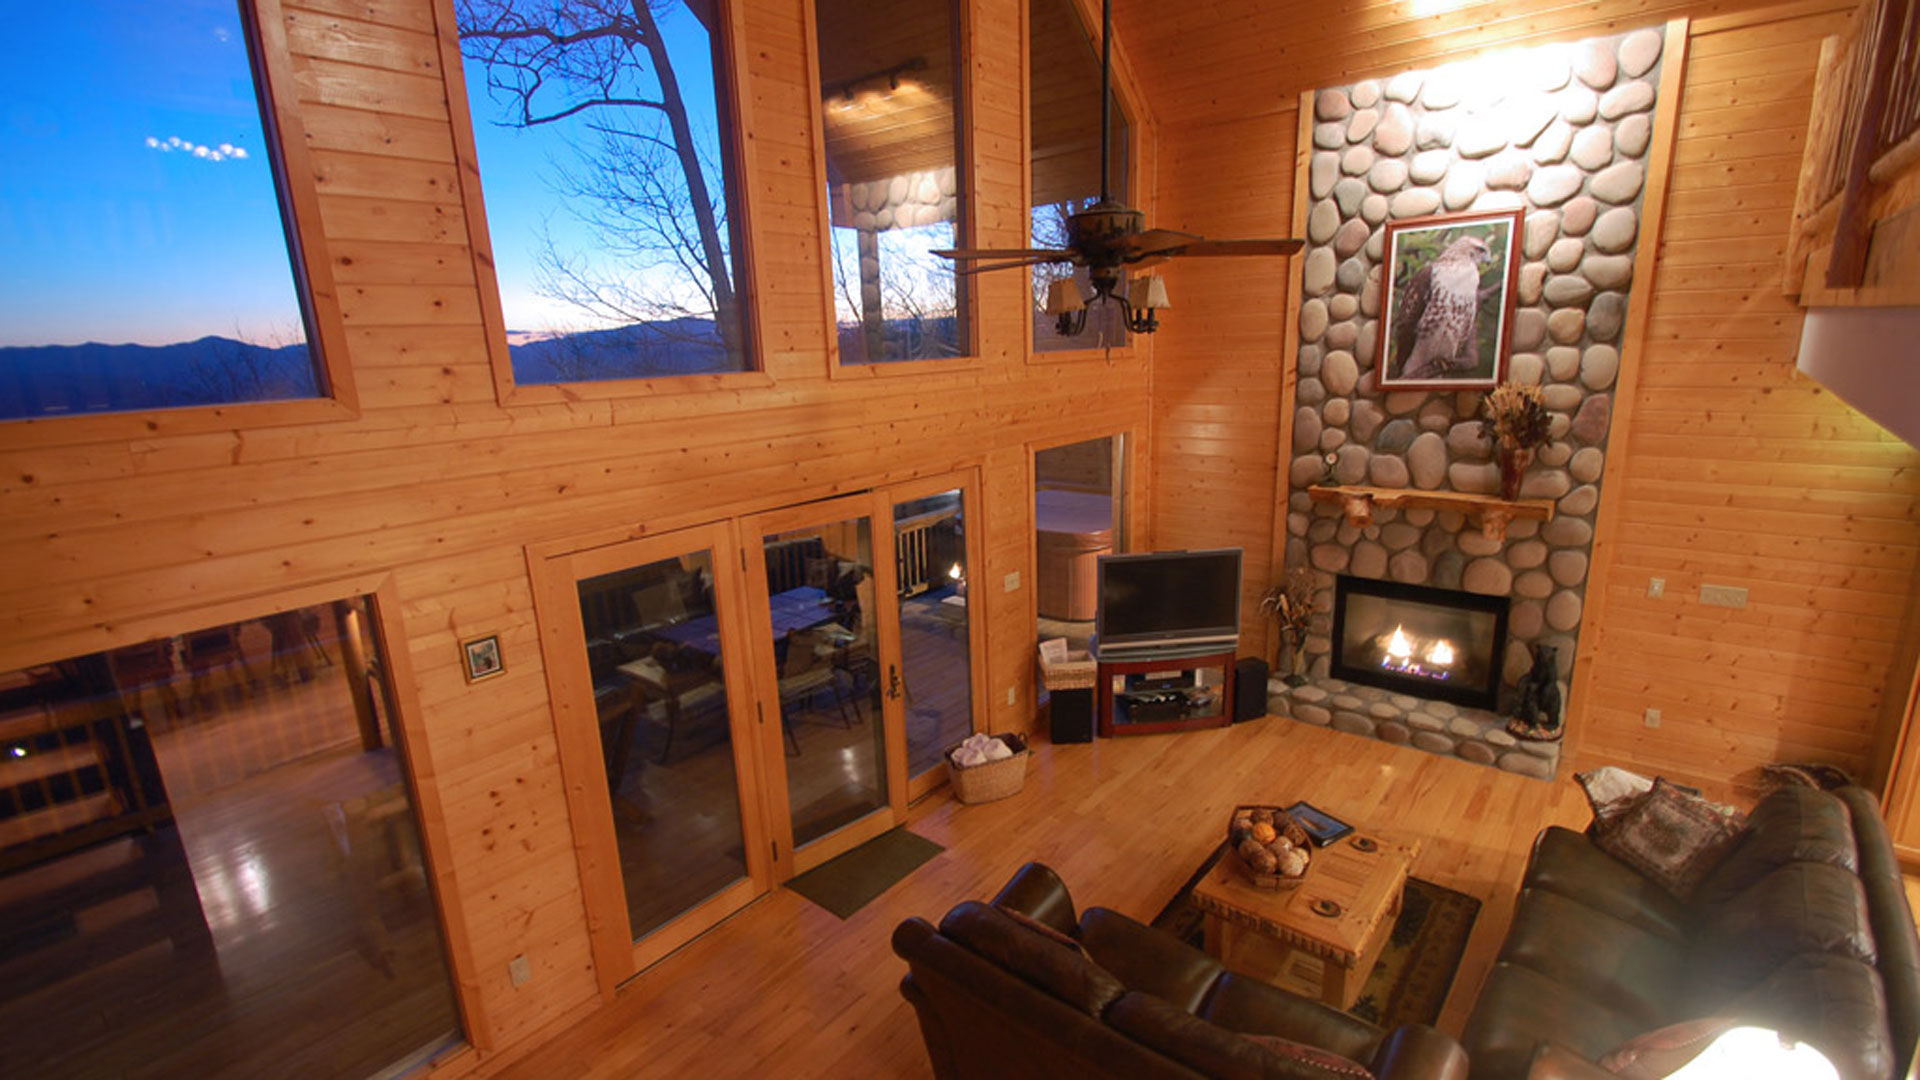 Watershed-Cabins-Bryson-City-Interior-Log-Cabin-Home-Rental